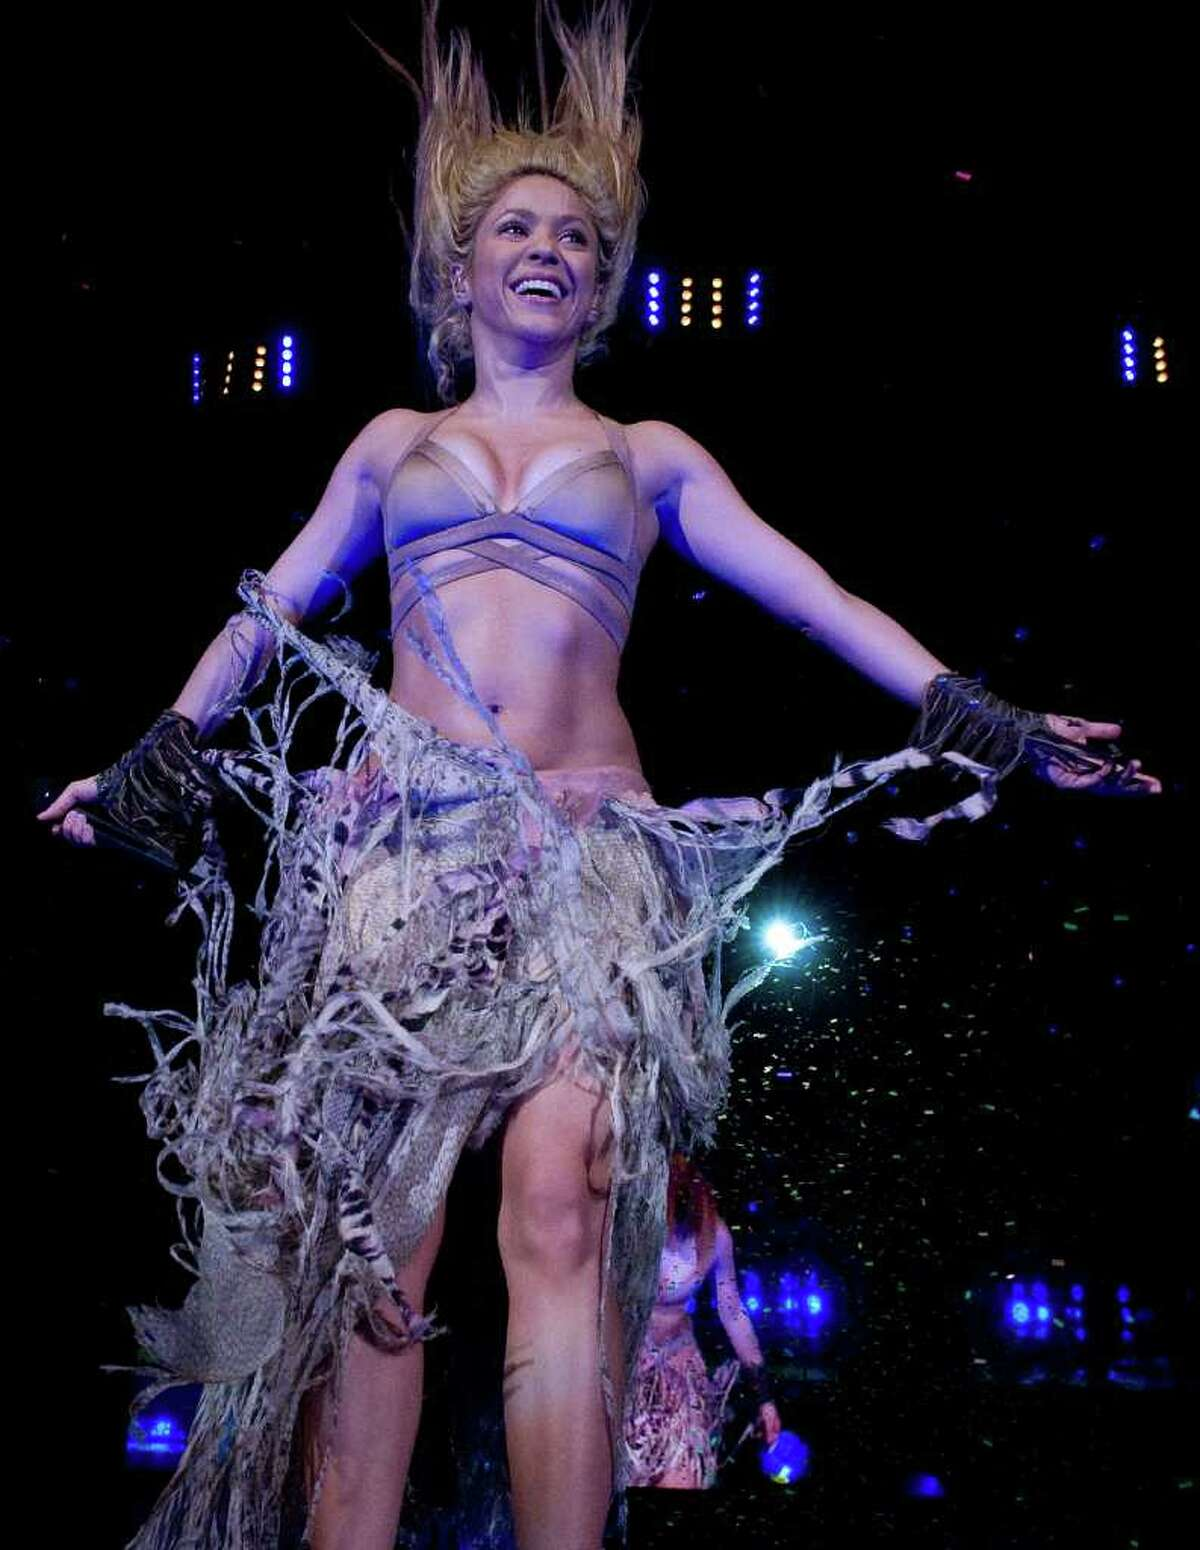 Shakira performs in concert at the Lluis Campanys Olympic Stadium in Barcelona, Spain.